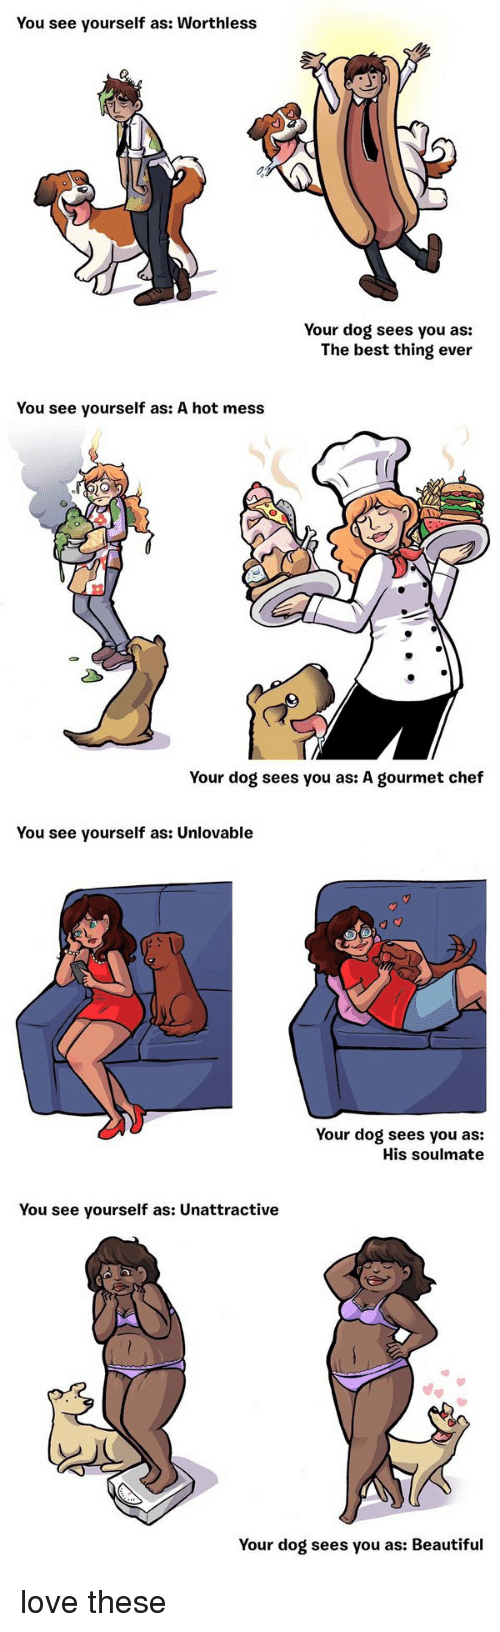 Beautiful, Dogs, and Funny: You see yourself as: Worthless  Your dog sees you as:  The best thing ever   You see yourself as: A hot mess  Your dog sees you as: A gourmet chef   You see yourself as: Unlovable  Your dog sees you as:  His soulmate   You see yourself as: unattractive  Your dog sees you as: Beautiful love these